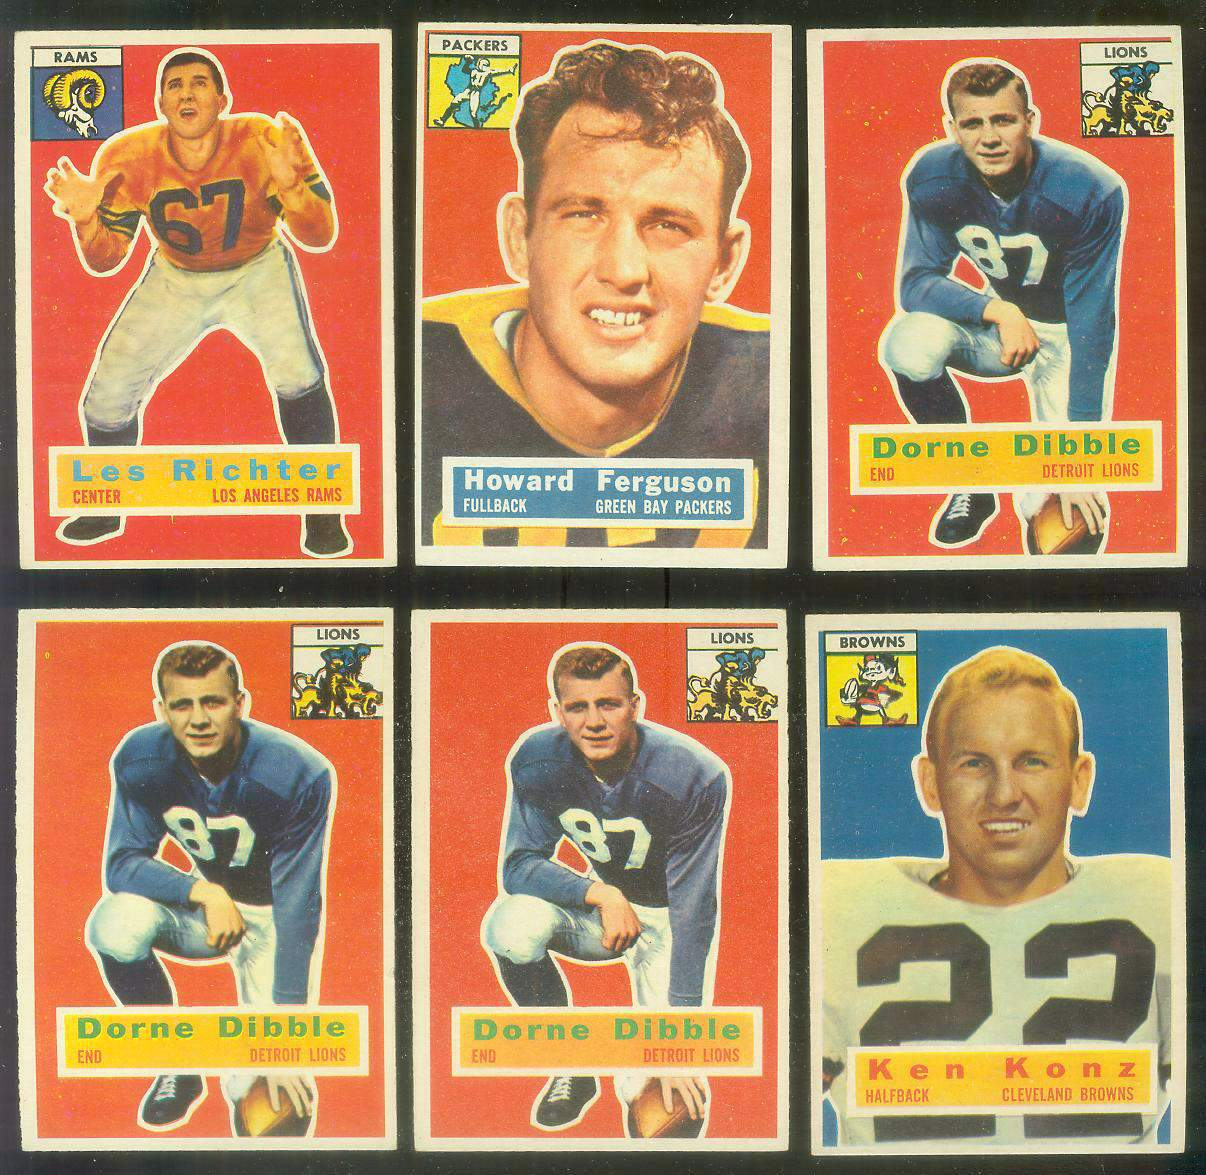 1956 Topps FB #.31 Howard Ferguson (Packers) Football cards value